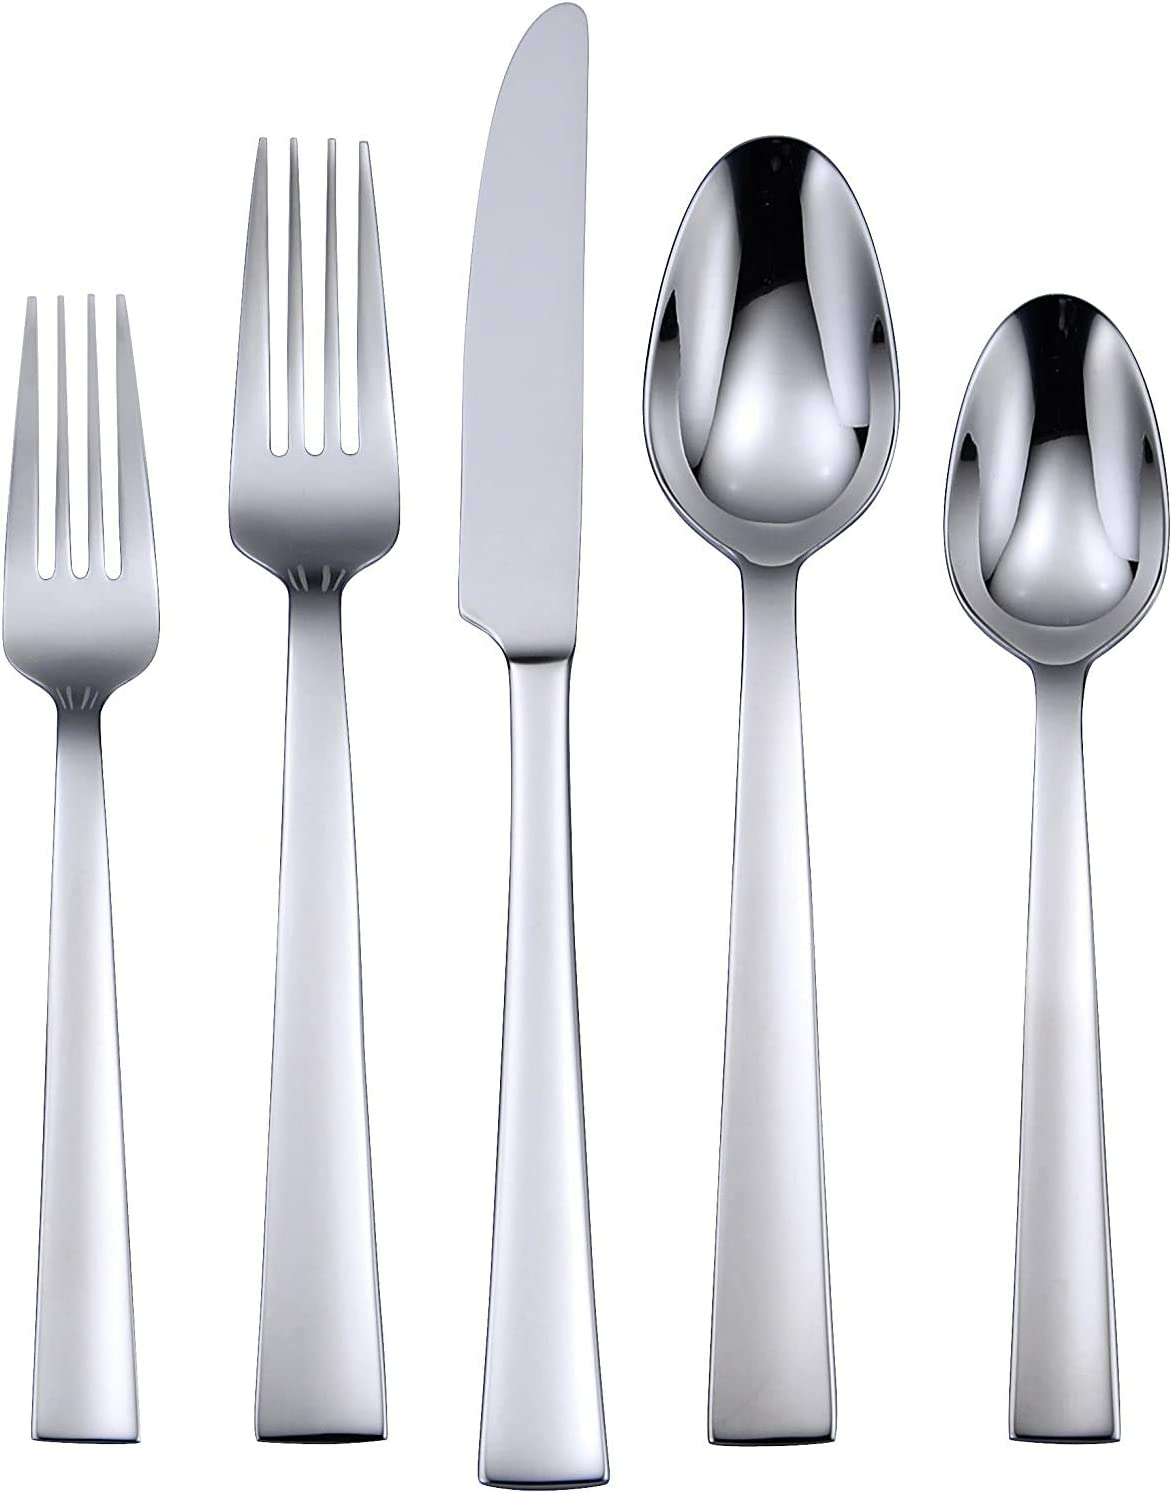 Oneida Madison Avenue 20 Piece Everyday Flatware 18/0 Stainless Steel, Service for 4, Silverware Set